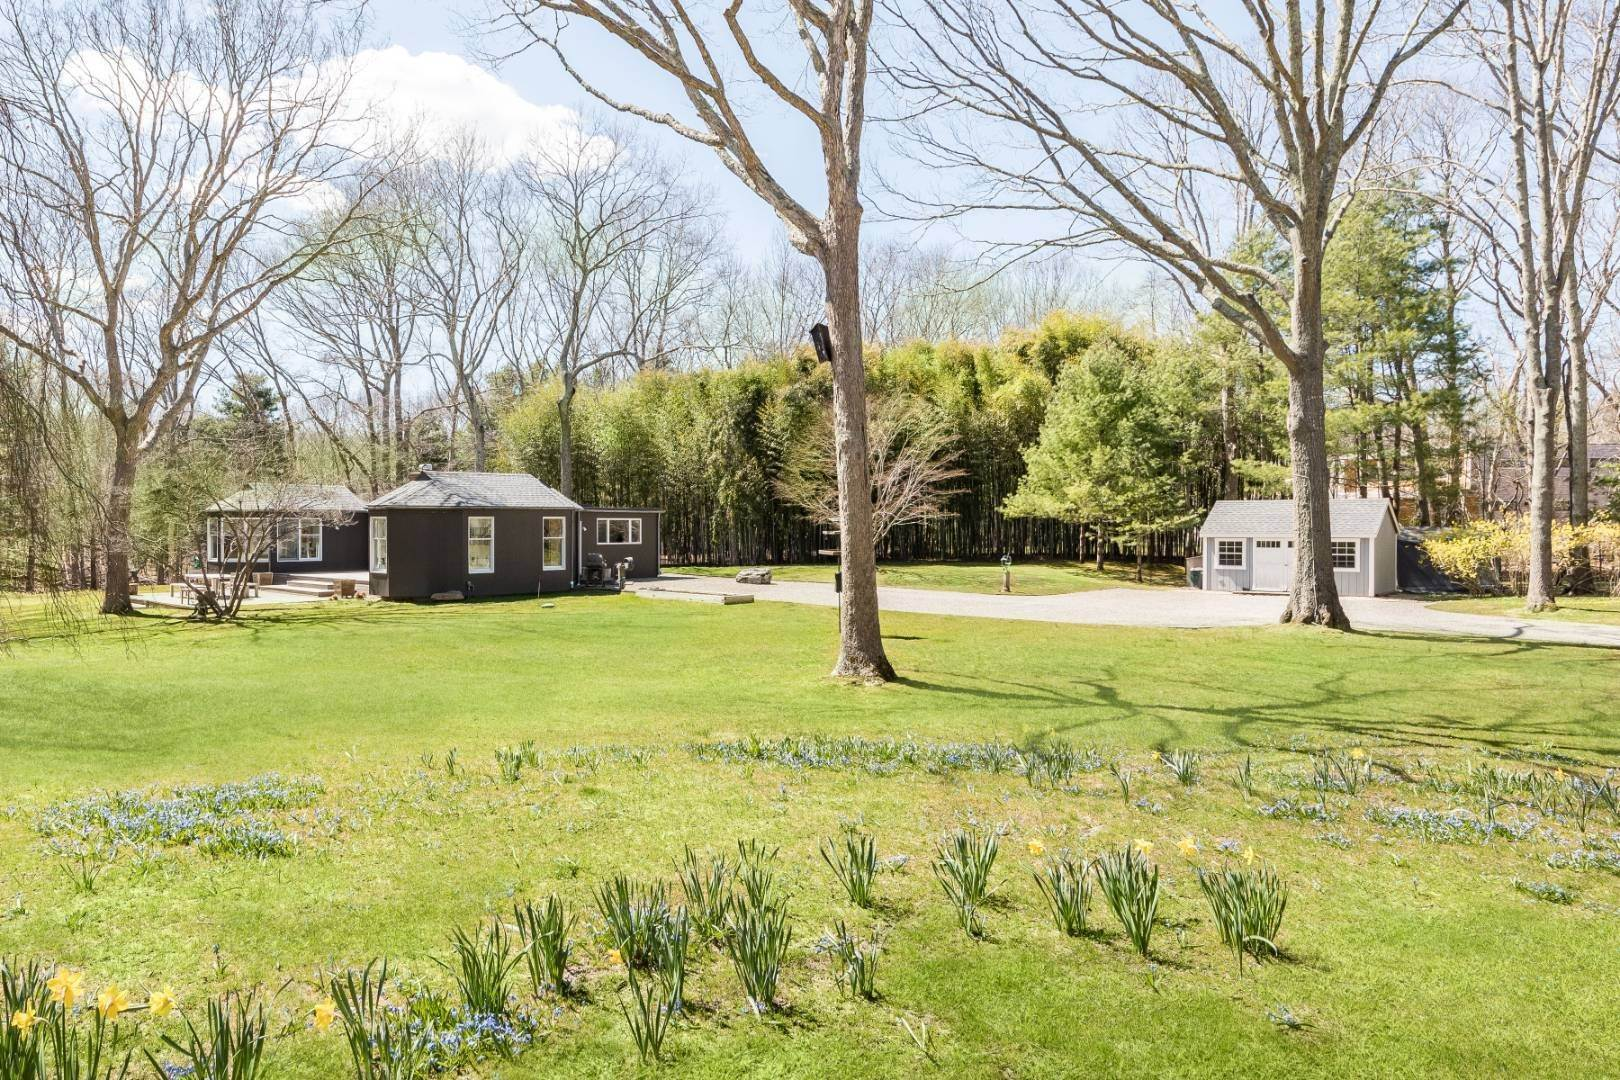 Single Family Home for Sale at Charming Cottage On Idyllic Private Acre 8 Old Northwest Road, East Hampton, NY 11937